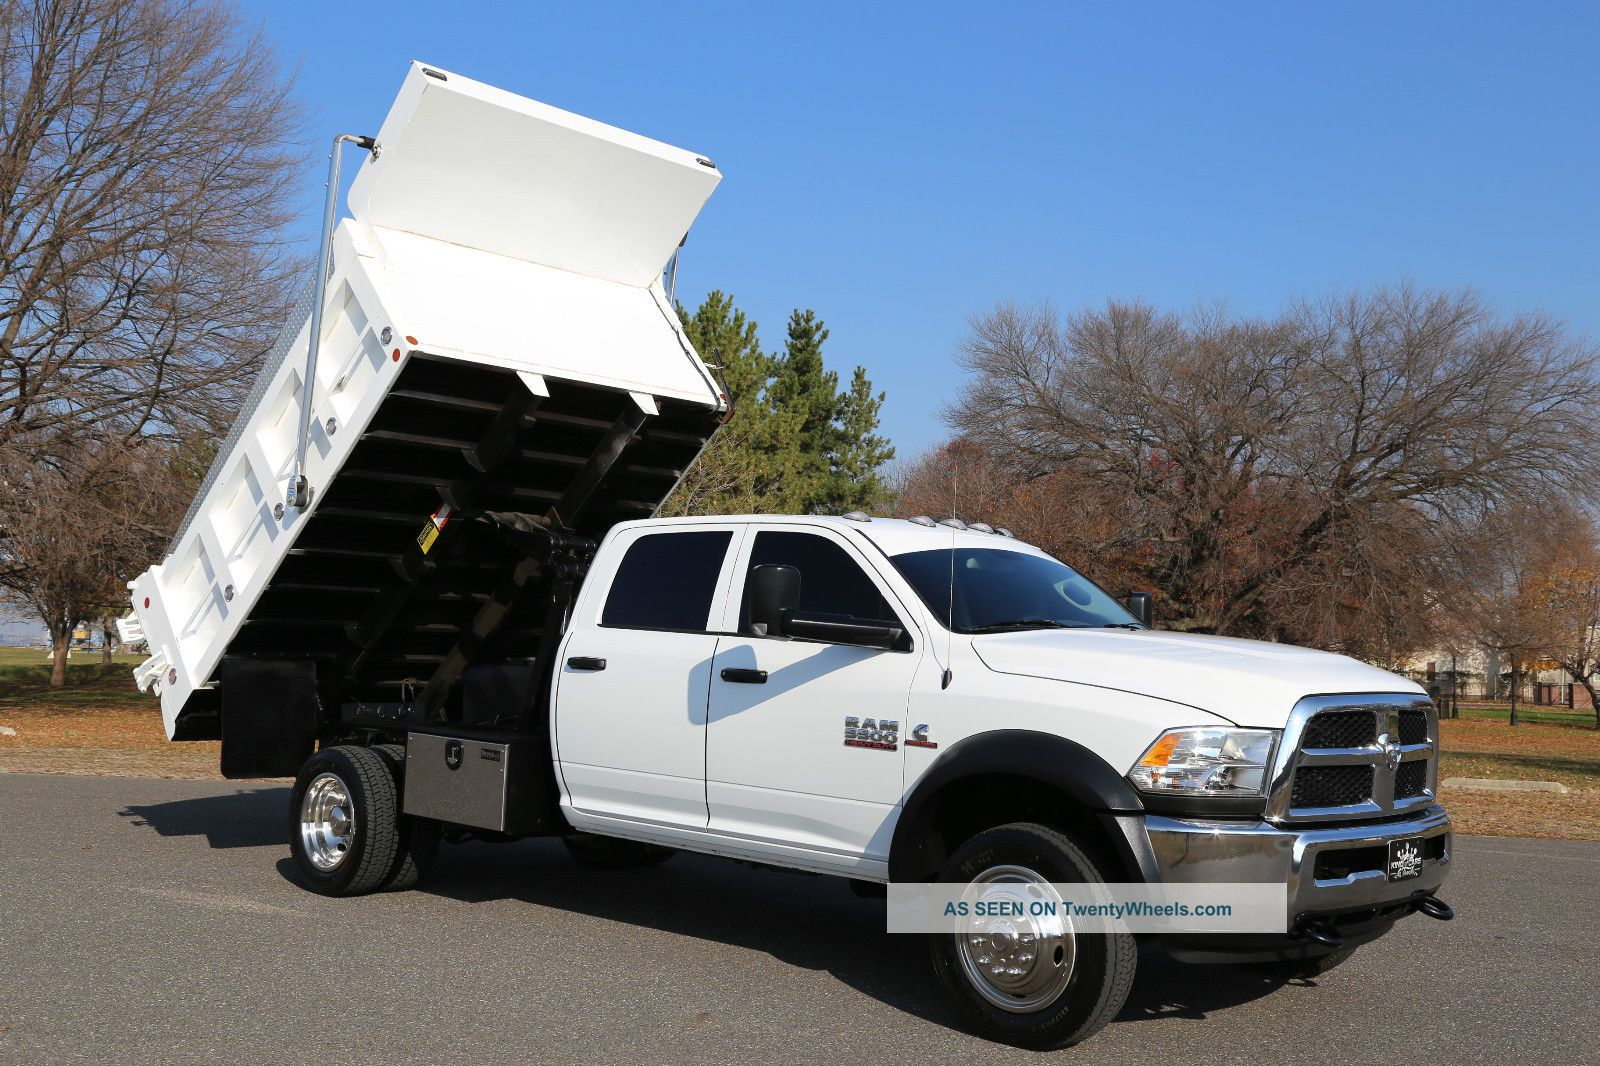 2014 Dodge Ram 5500 Heavy Duty